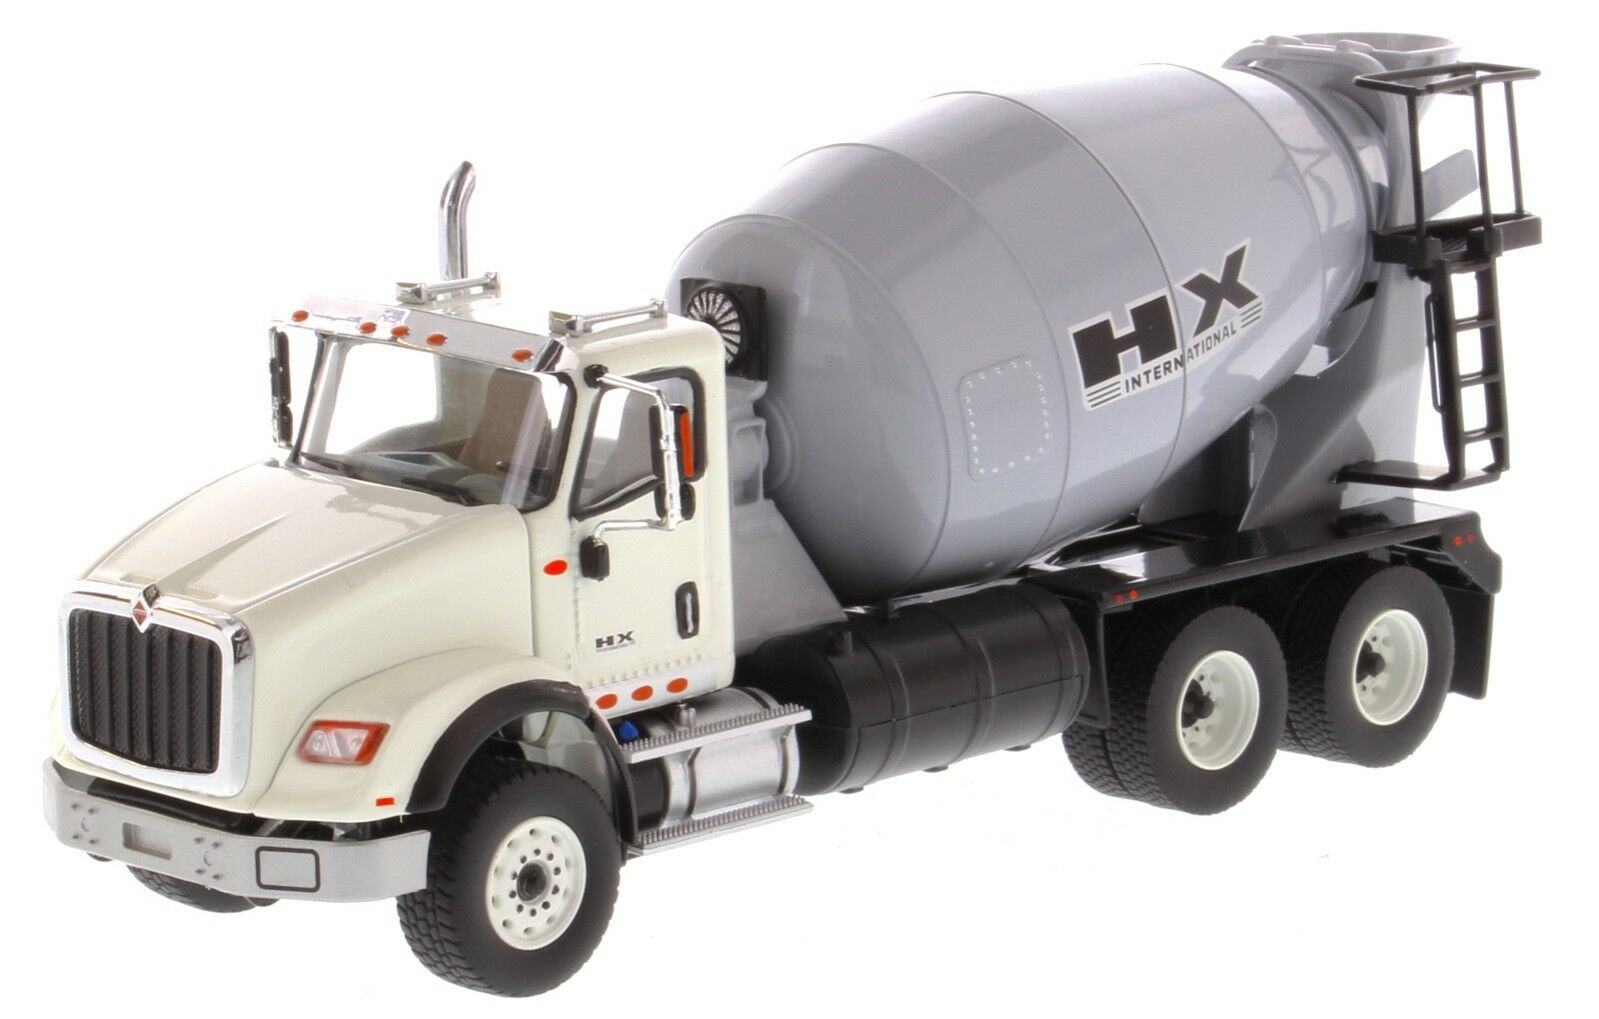 International 1 50 scale HX615 Concrete Mixer - Diecast Masters 71014